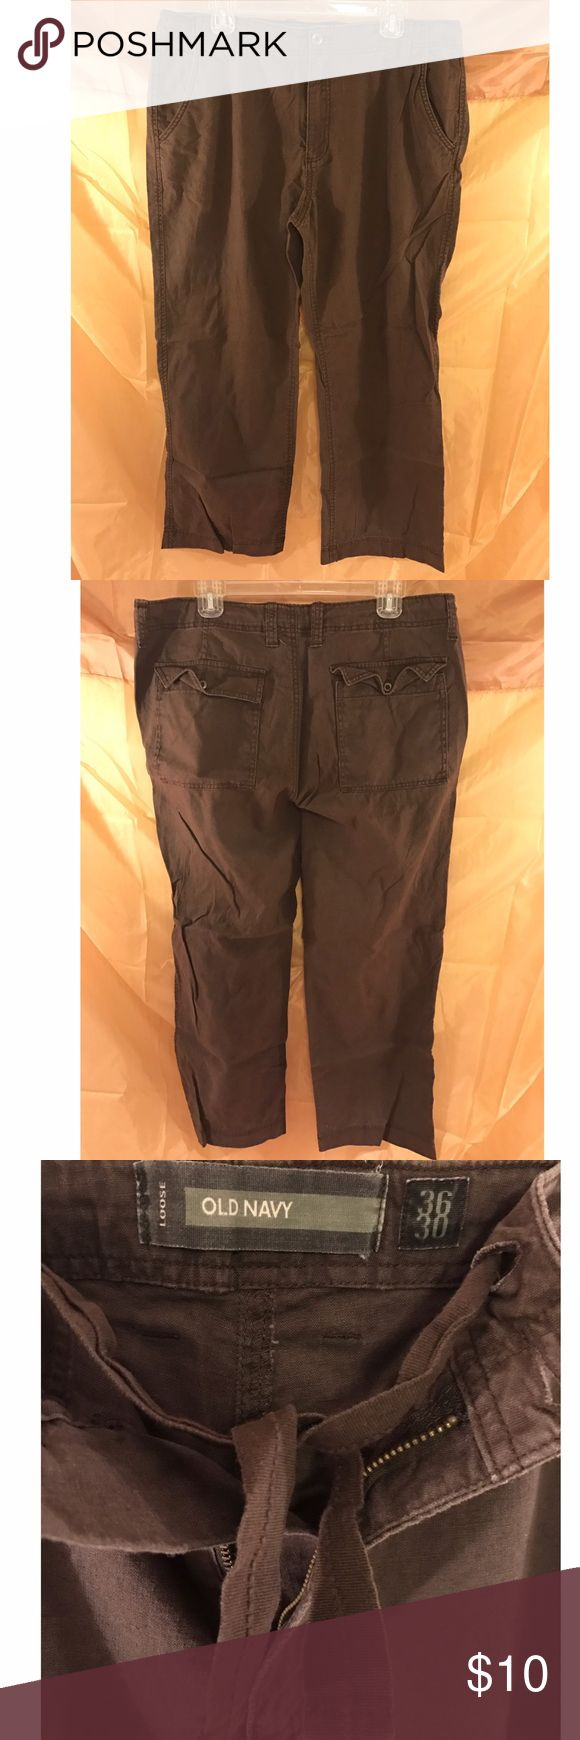 Men's Old Navy Linen Pants Men's Old Navy linen pants for sale. Great pants for the summer! Drawstrings are in addition to the button closure. Old Navy Pants Cargo